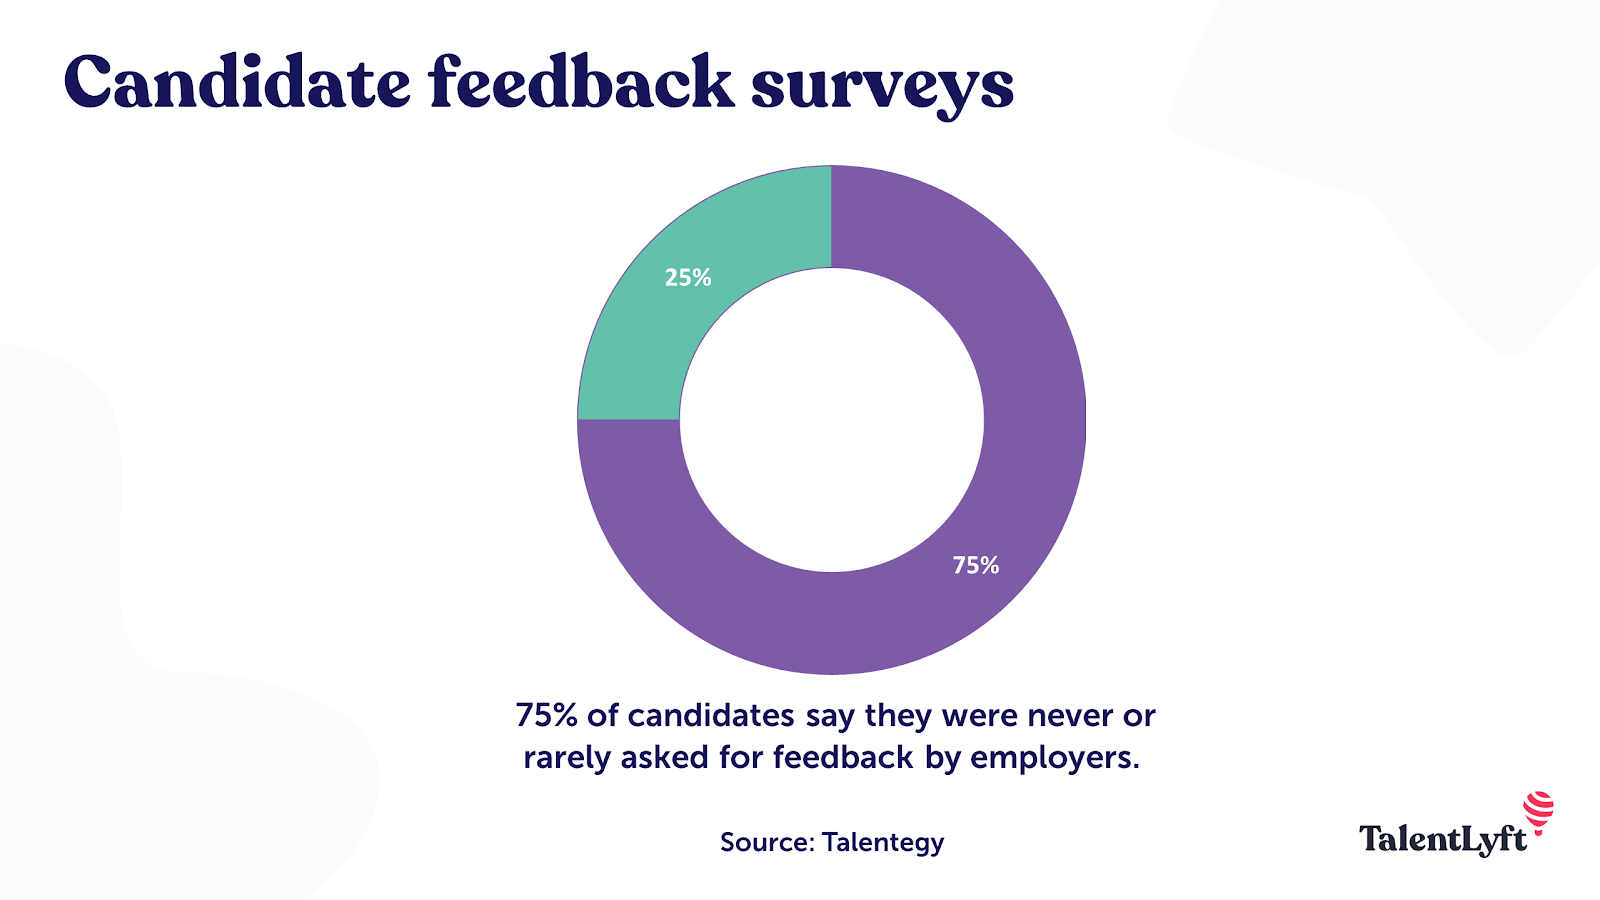 Candidate feedback survey - ask rejected candidates for feedback!